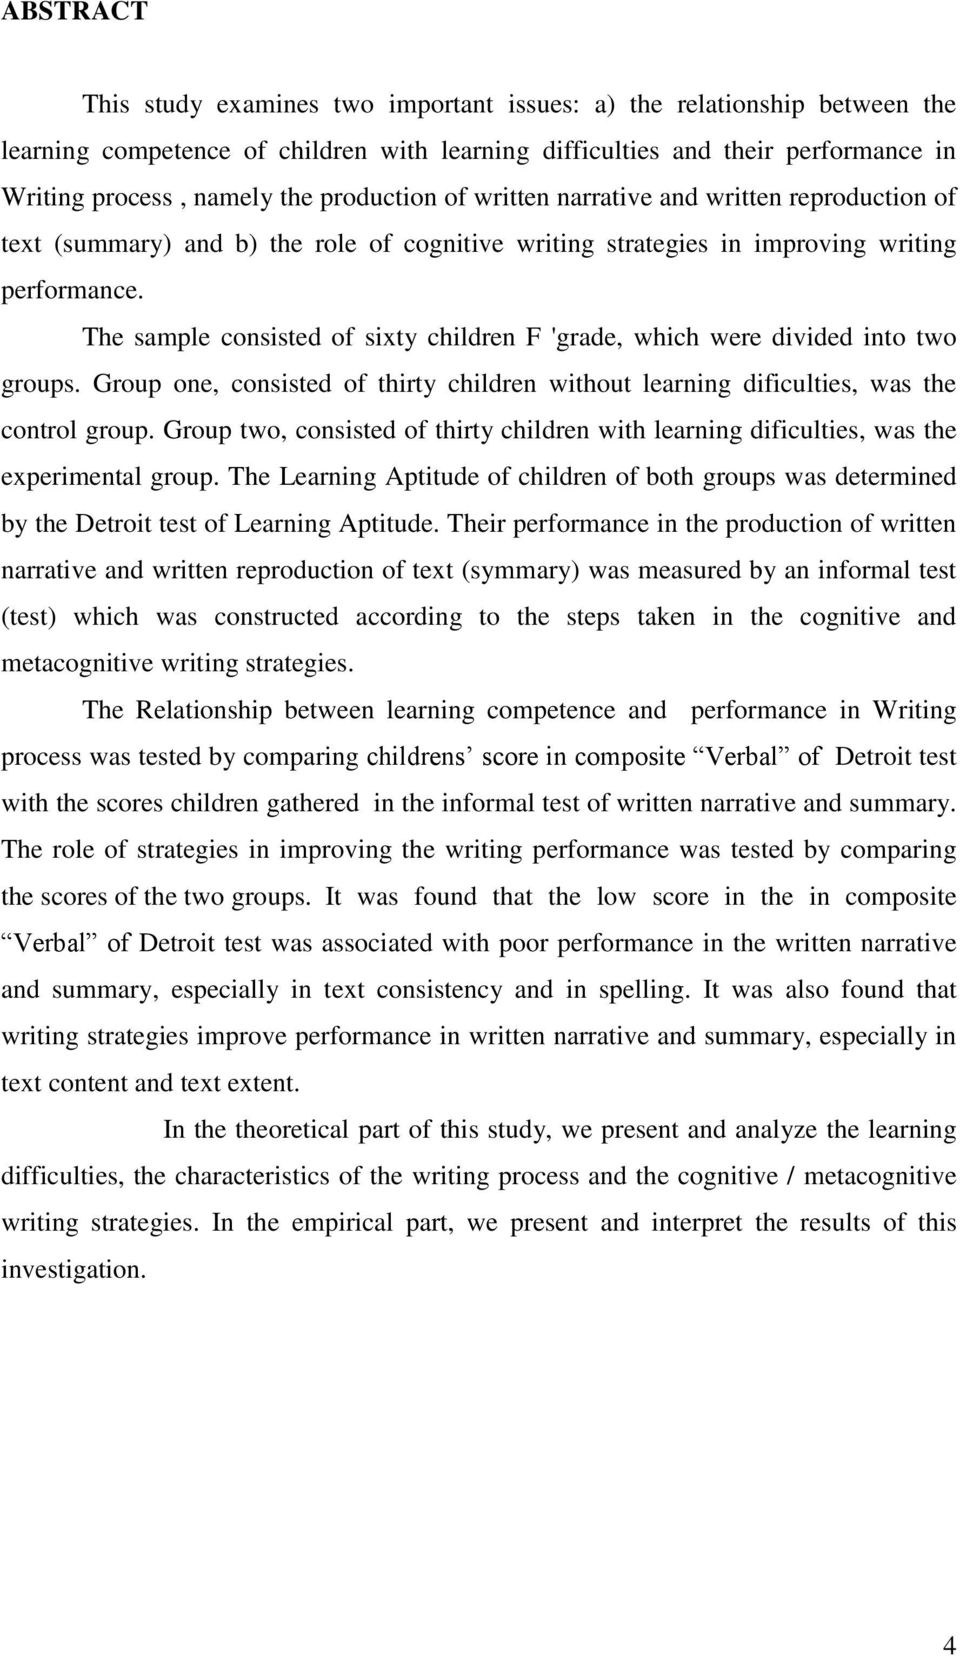 The sample consisted of sixty children F 'grade, which were divided into two groups. Group one, consisted of thirty children without learning dificulties, was the control group.